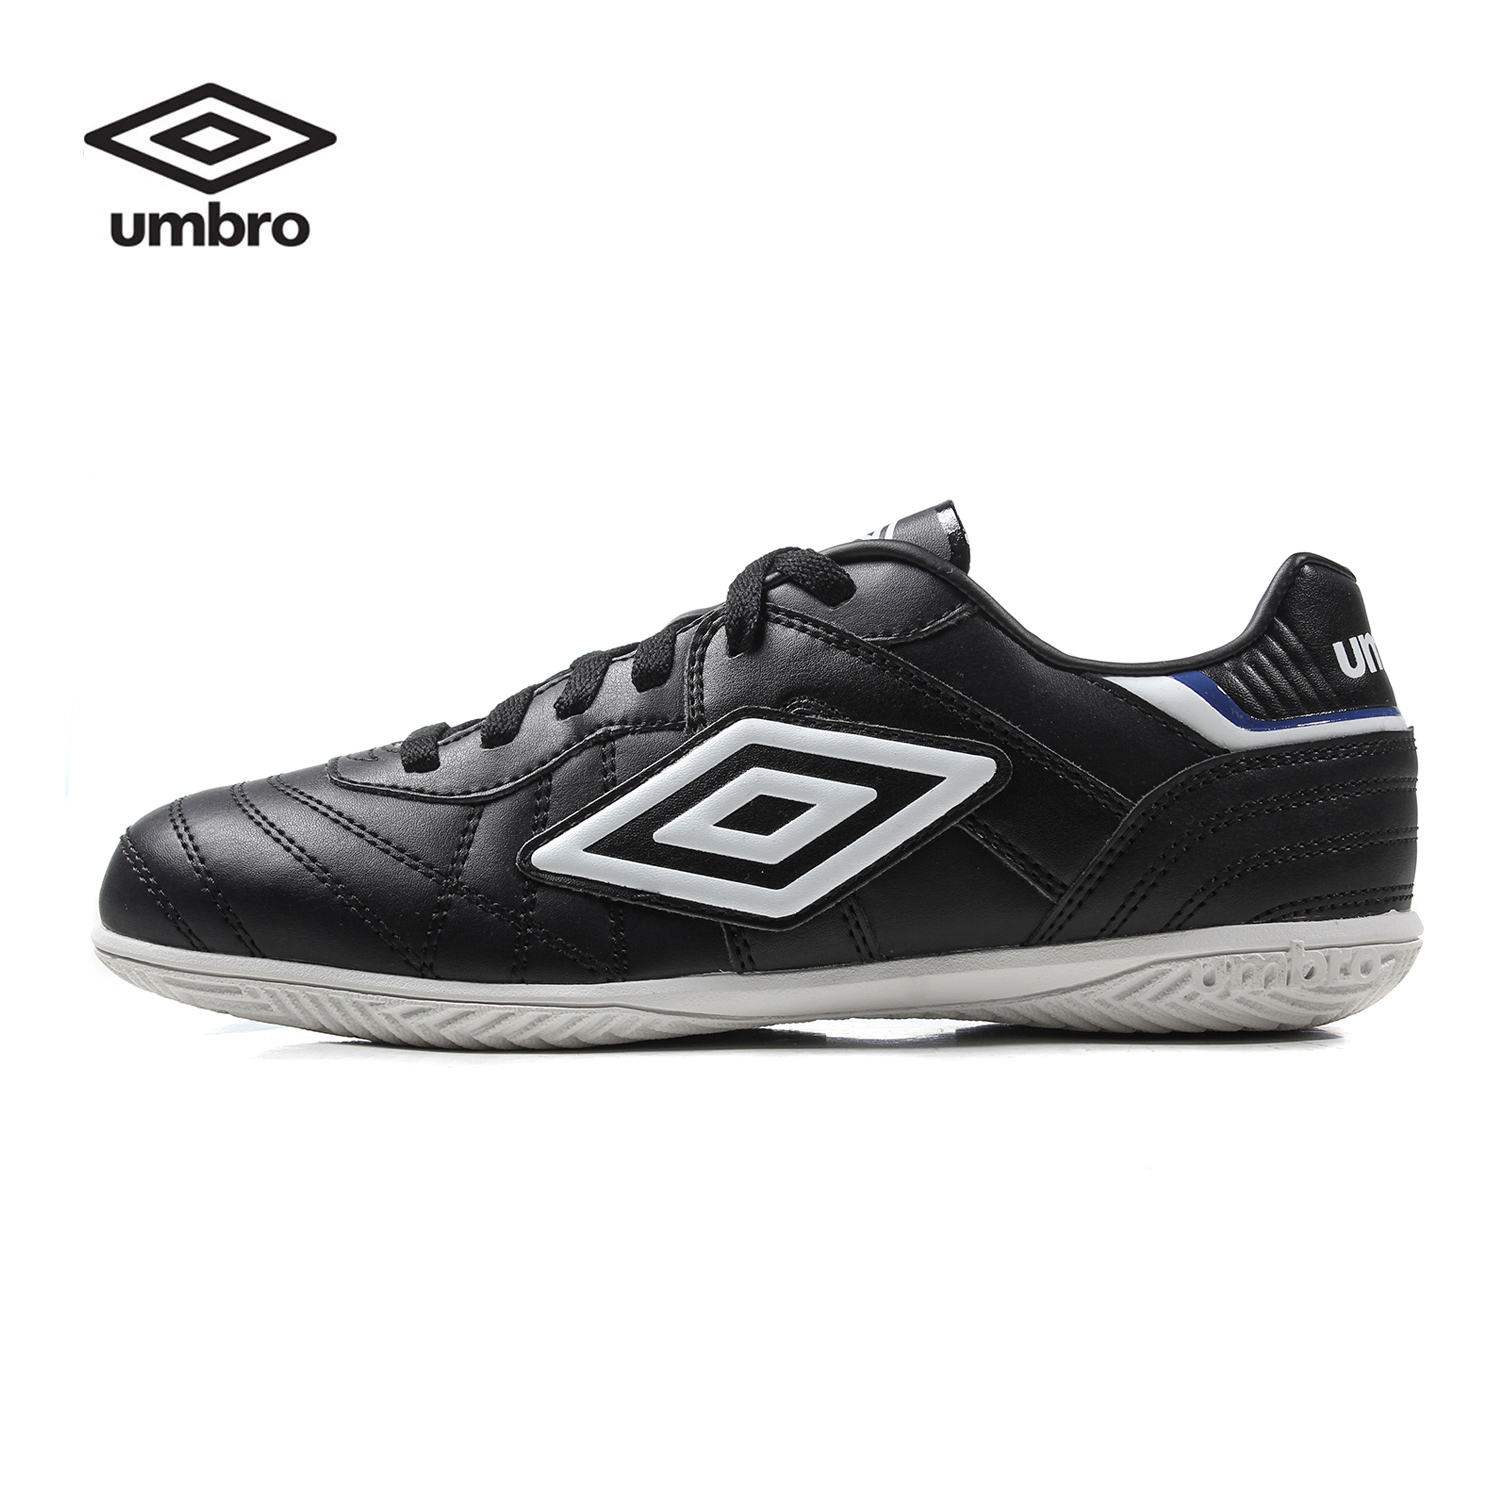 40d93a1d294f3 2016 Umbro Men s Outdoor Soccer Shoes AG HG FG Training Game Shoes  Hard-wearing Football